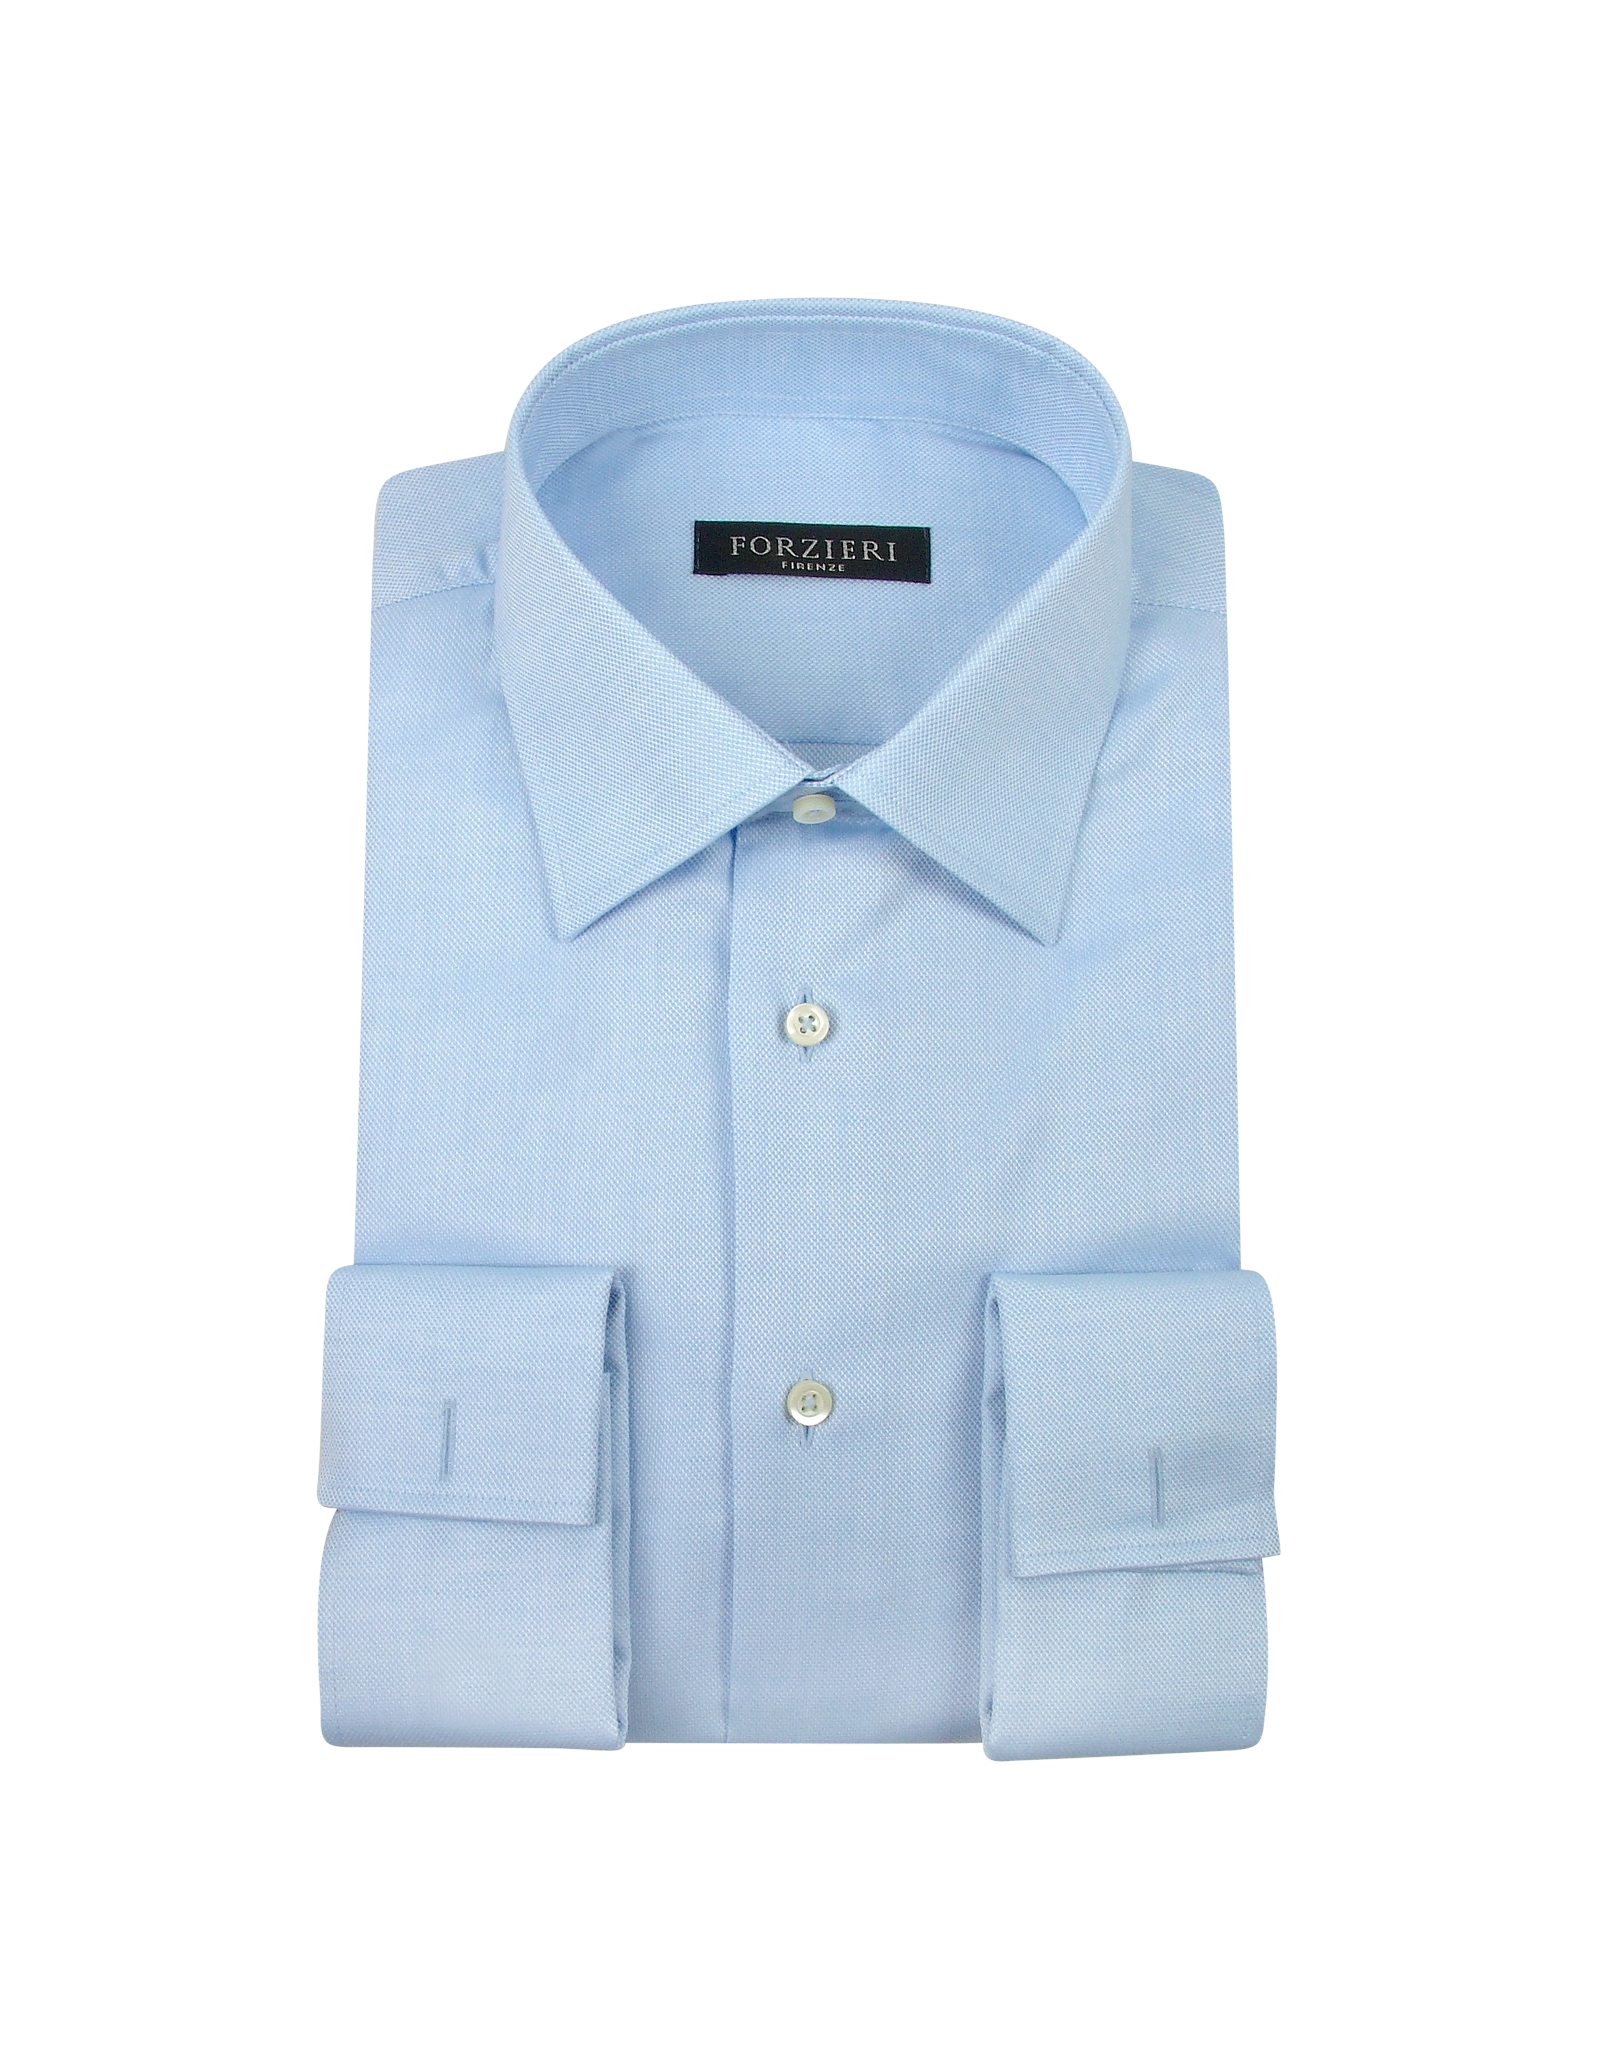 forzieri light blue french cuff cotton dress shirt for men